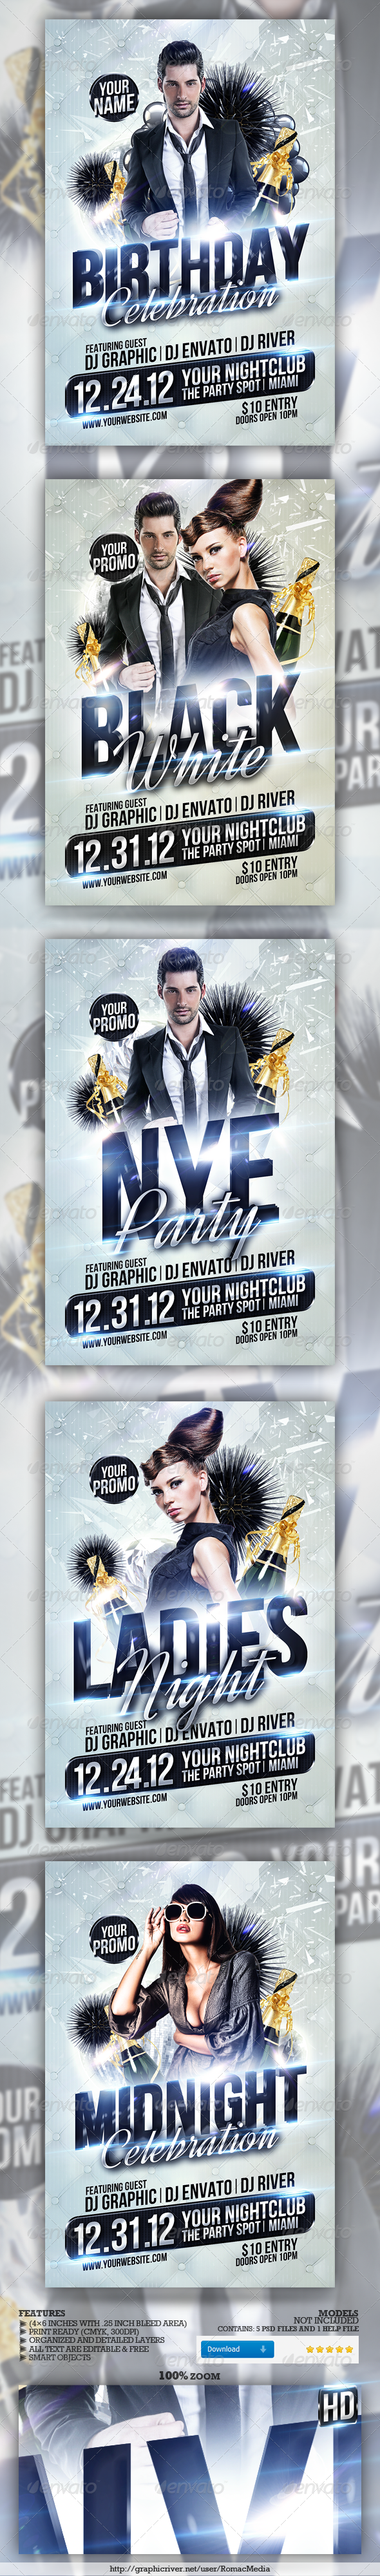 Club Sessions l Multi-Title Party Flyers - Clubs &amp; Parties Events